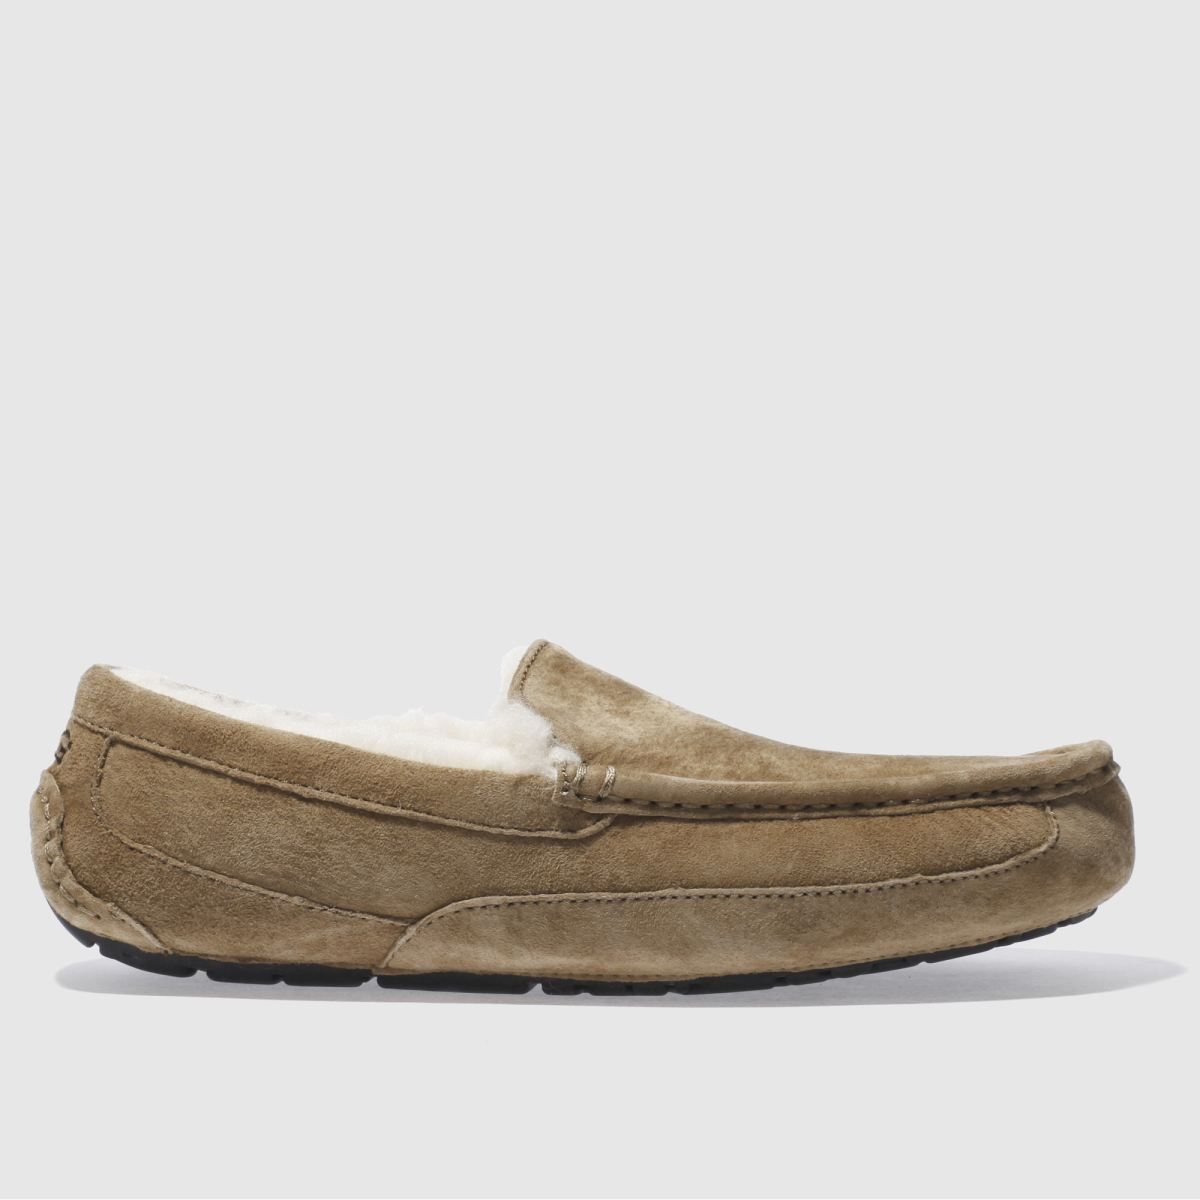 Ugg Tan Ascot Slippers